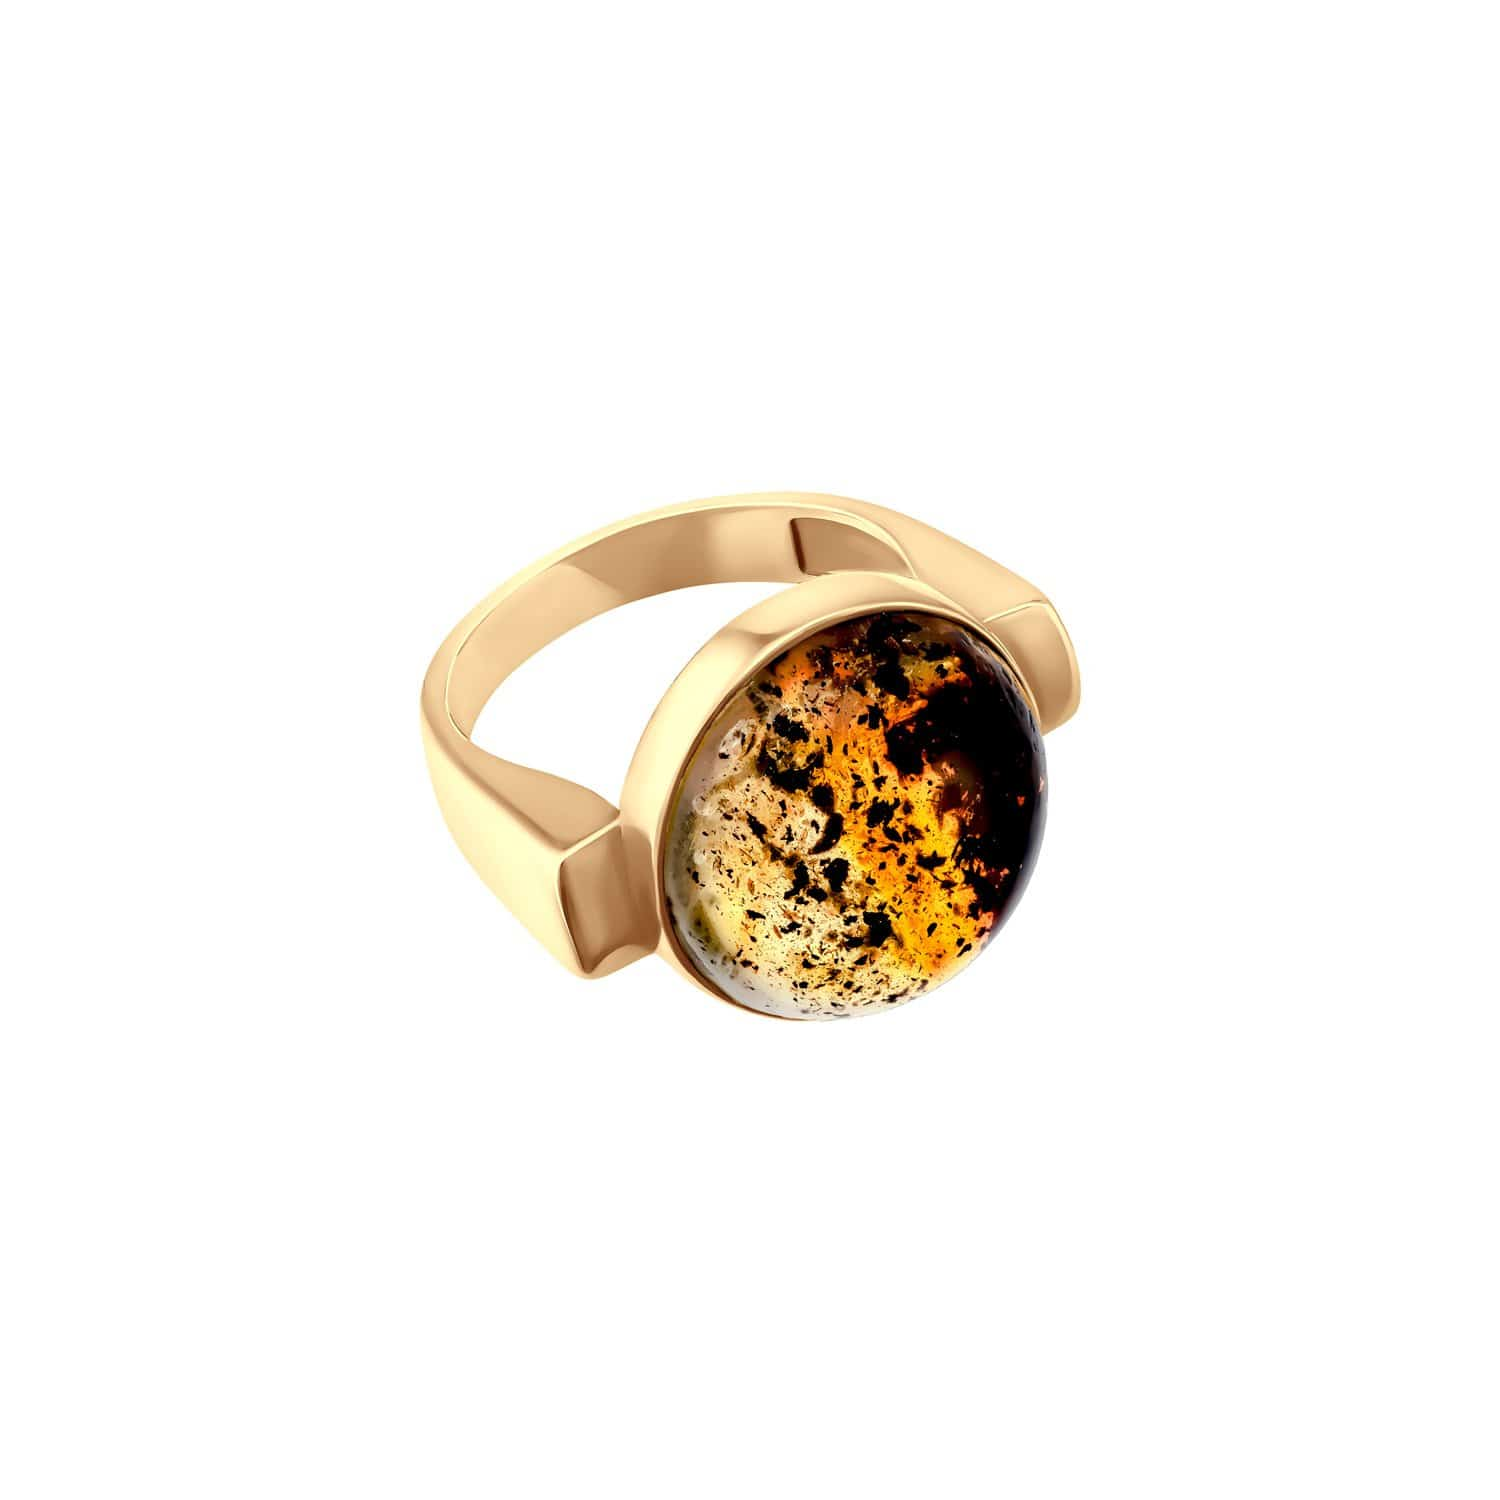 Leta Rings Modernism Gold + Inclusion Amber Ring